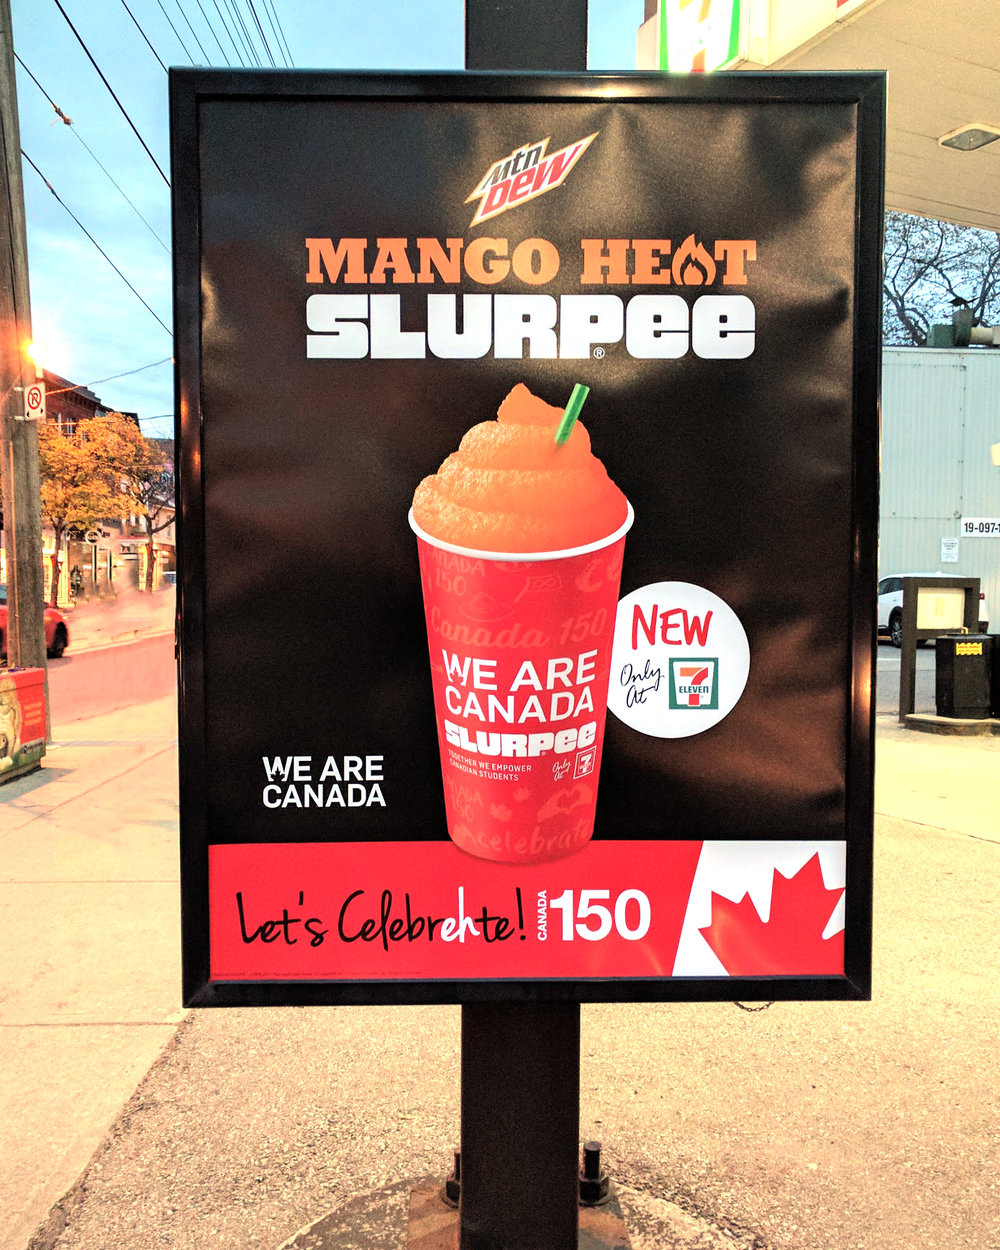 Slurpee cup featured in 7Eleven creative applications